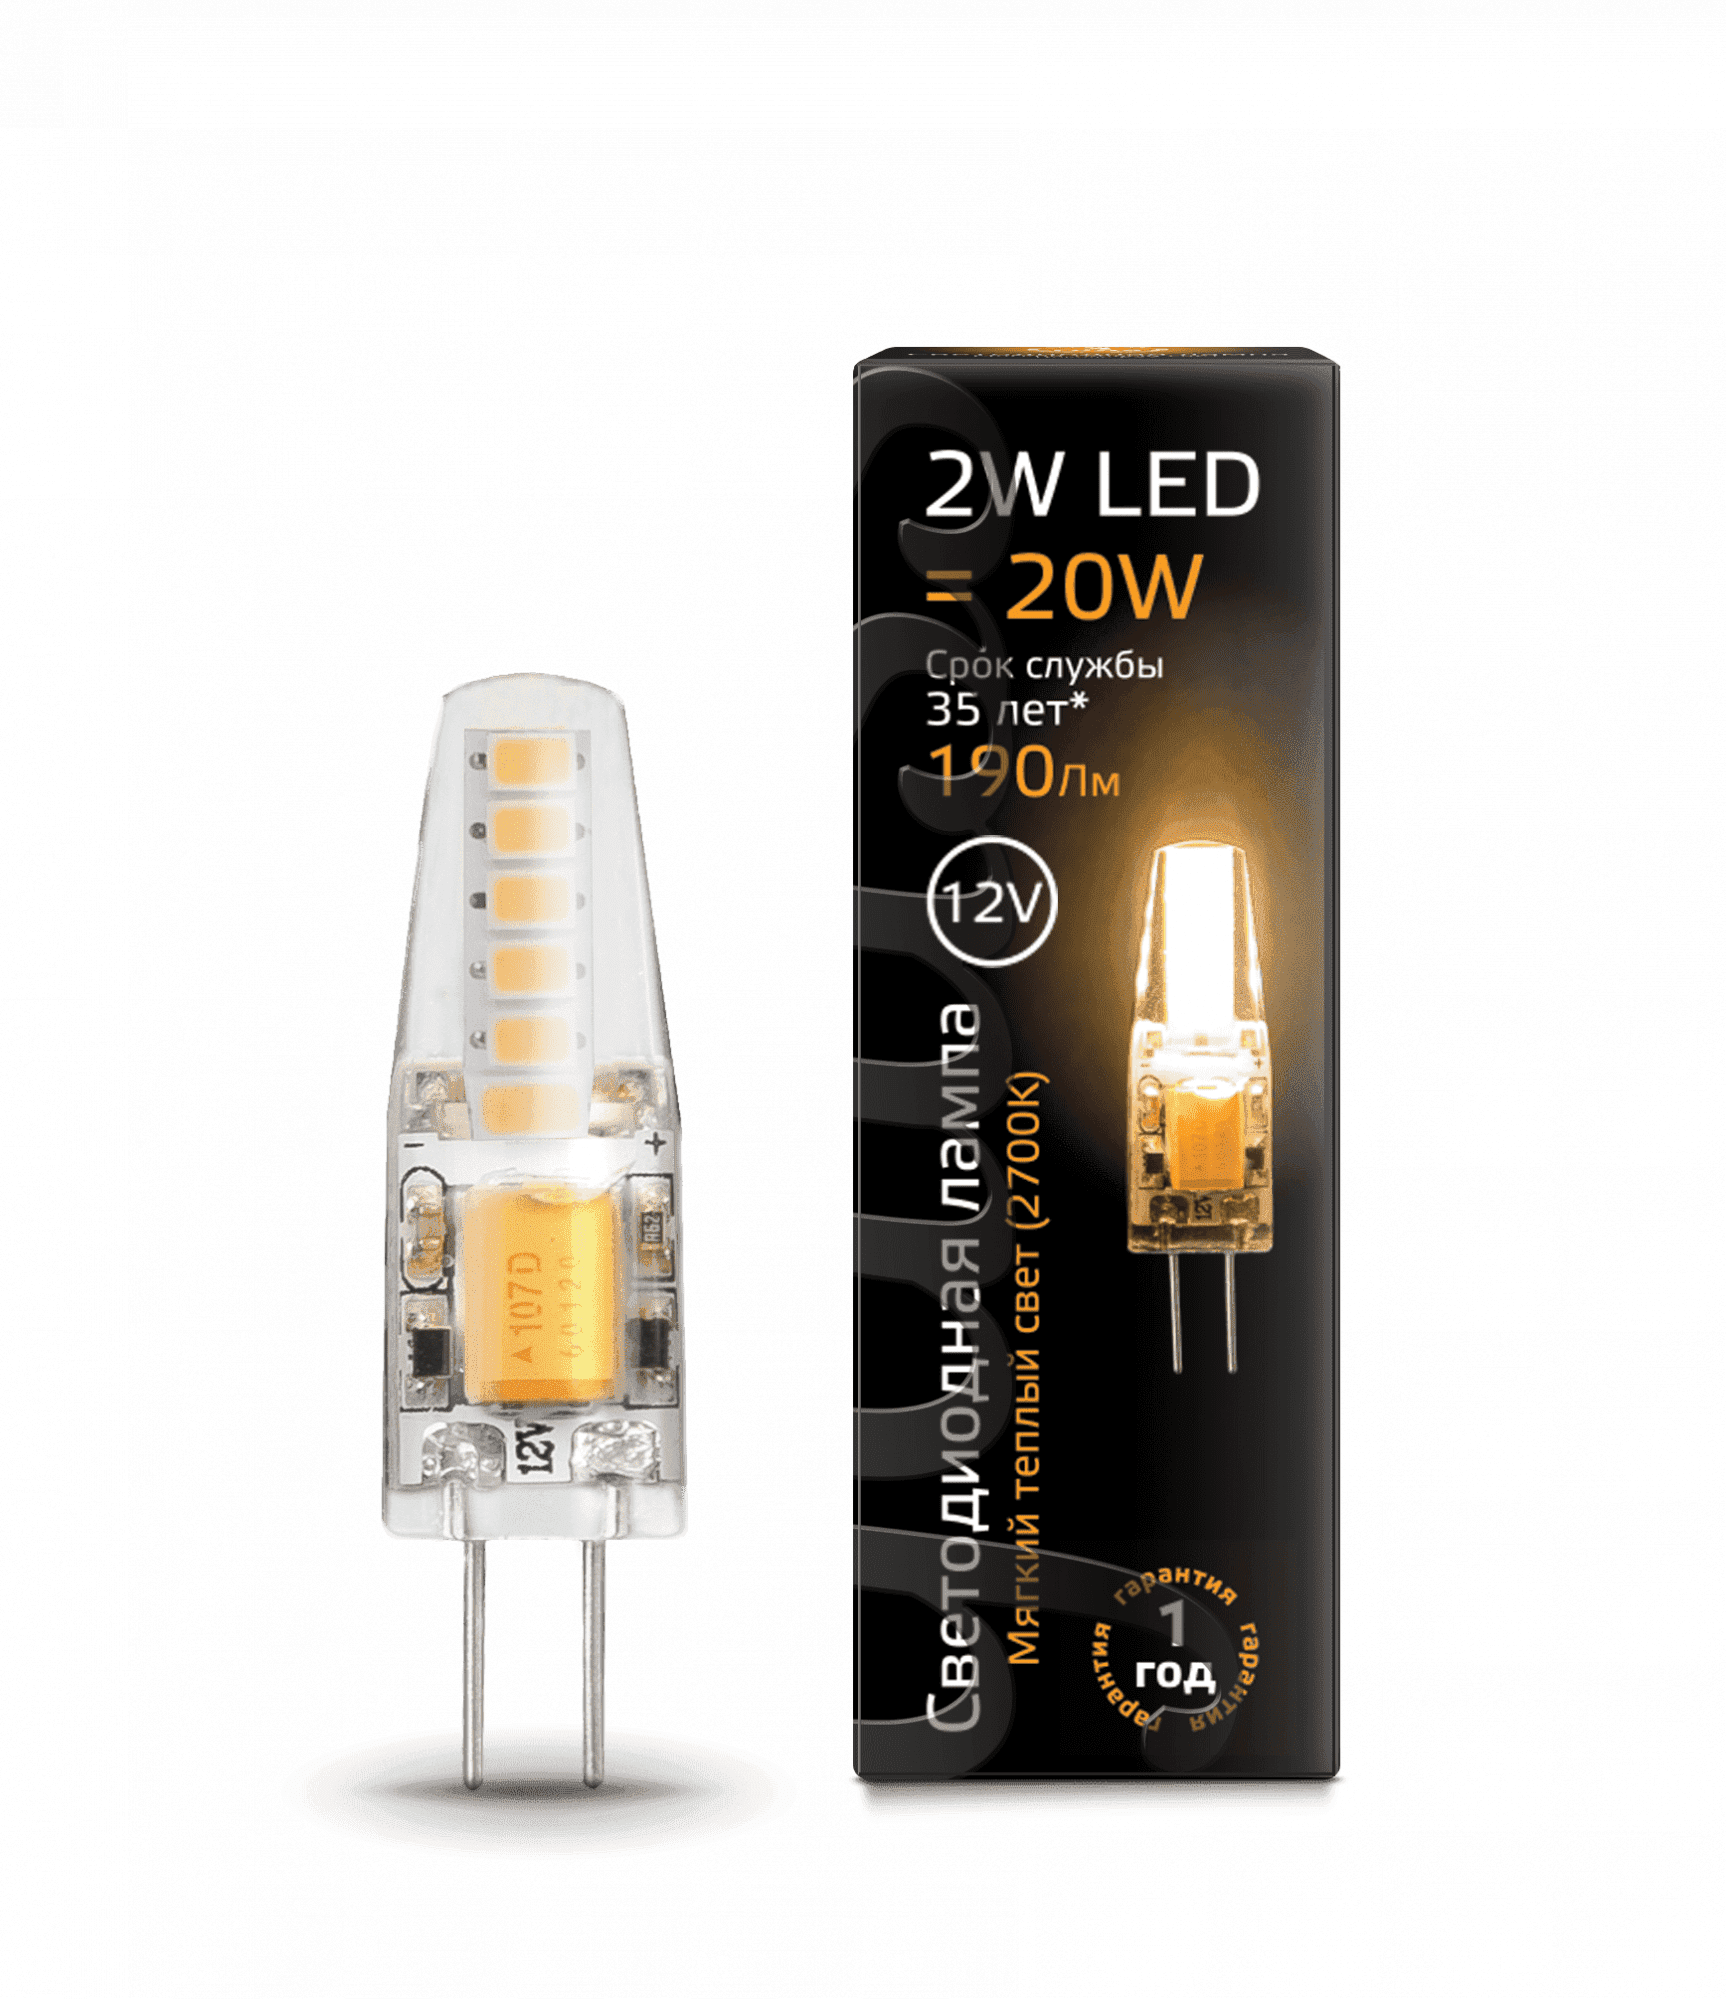 Gauss LED G4 12V 2W 2700K 1/20/200 арт. 207707102